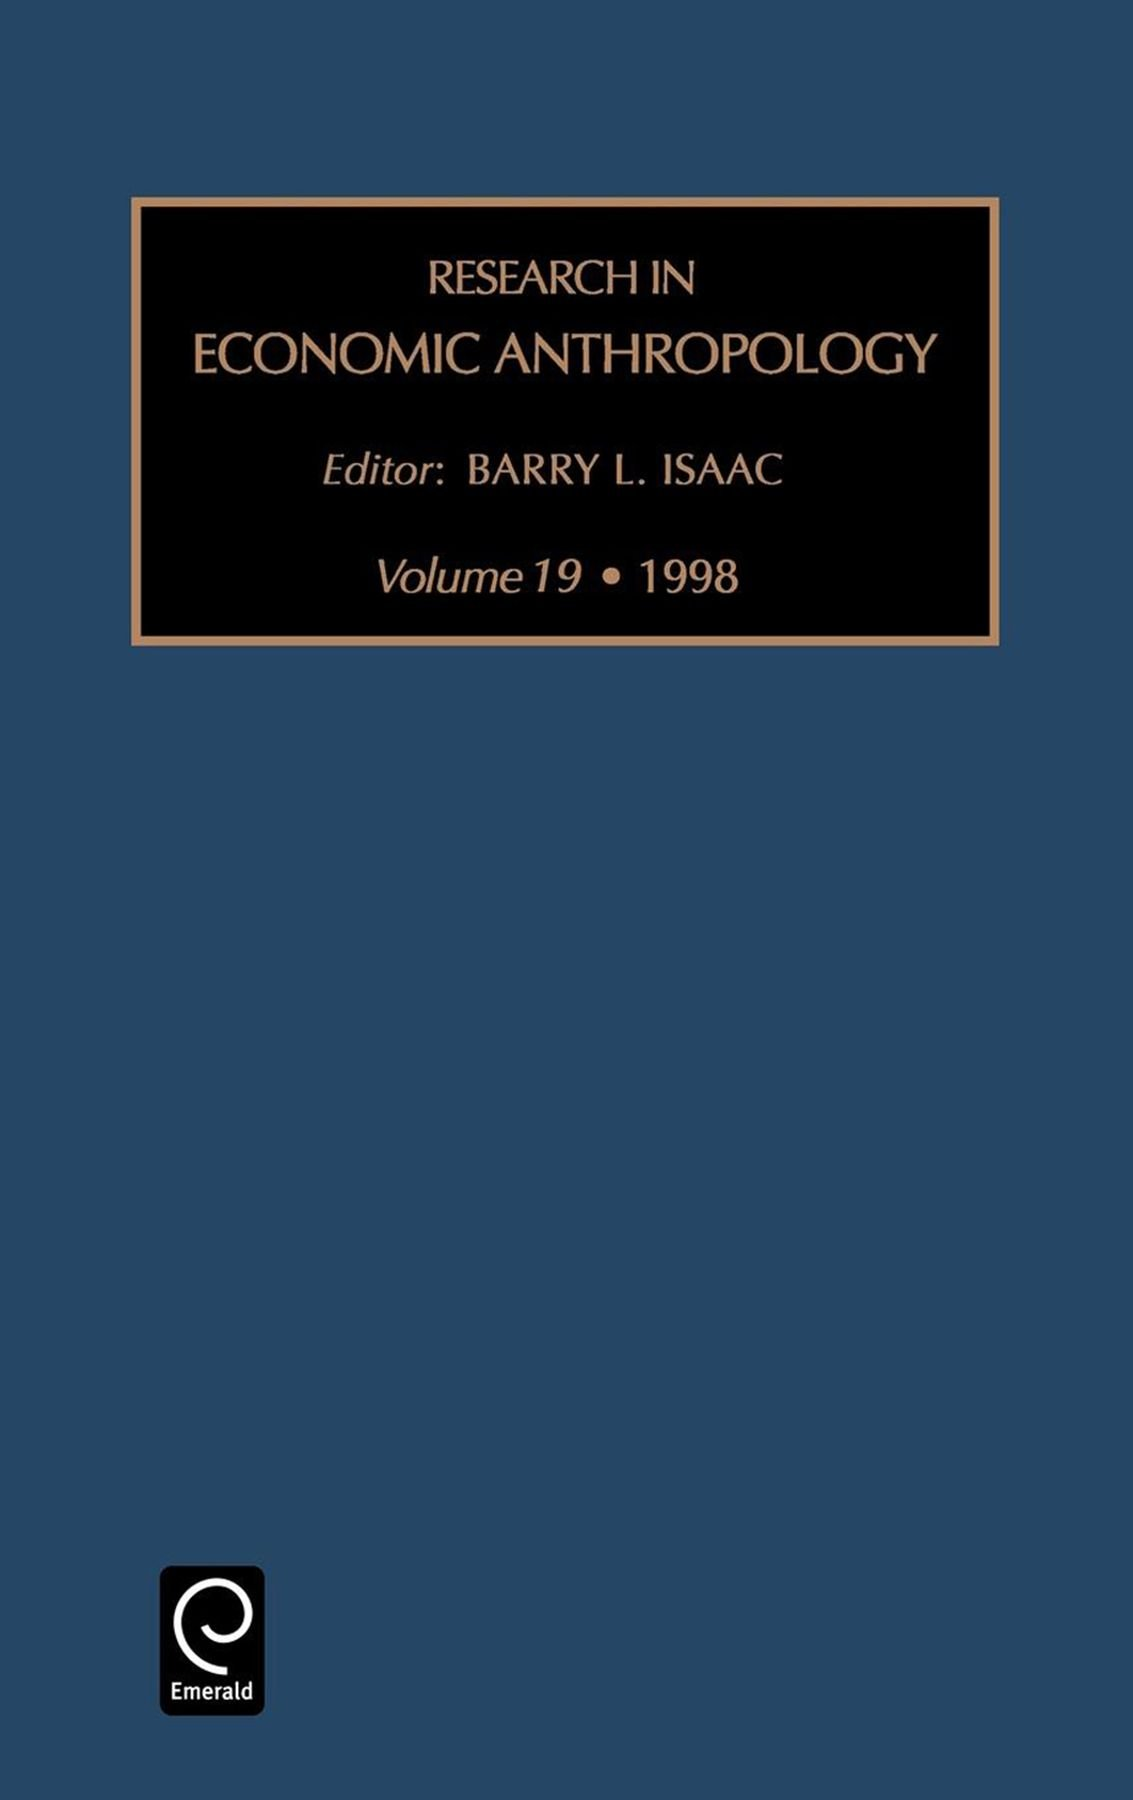 Research in Economic Anthropology - Barry L. Isaac